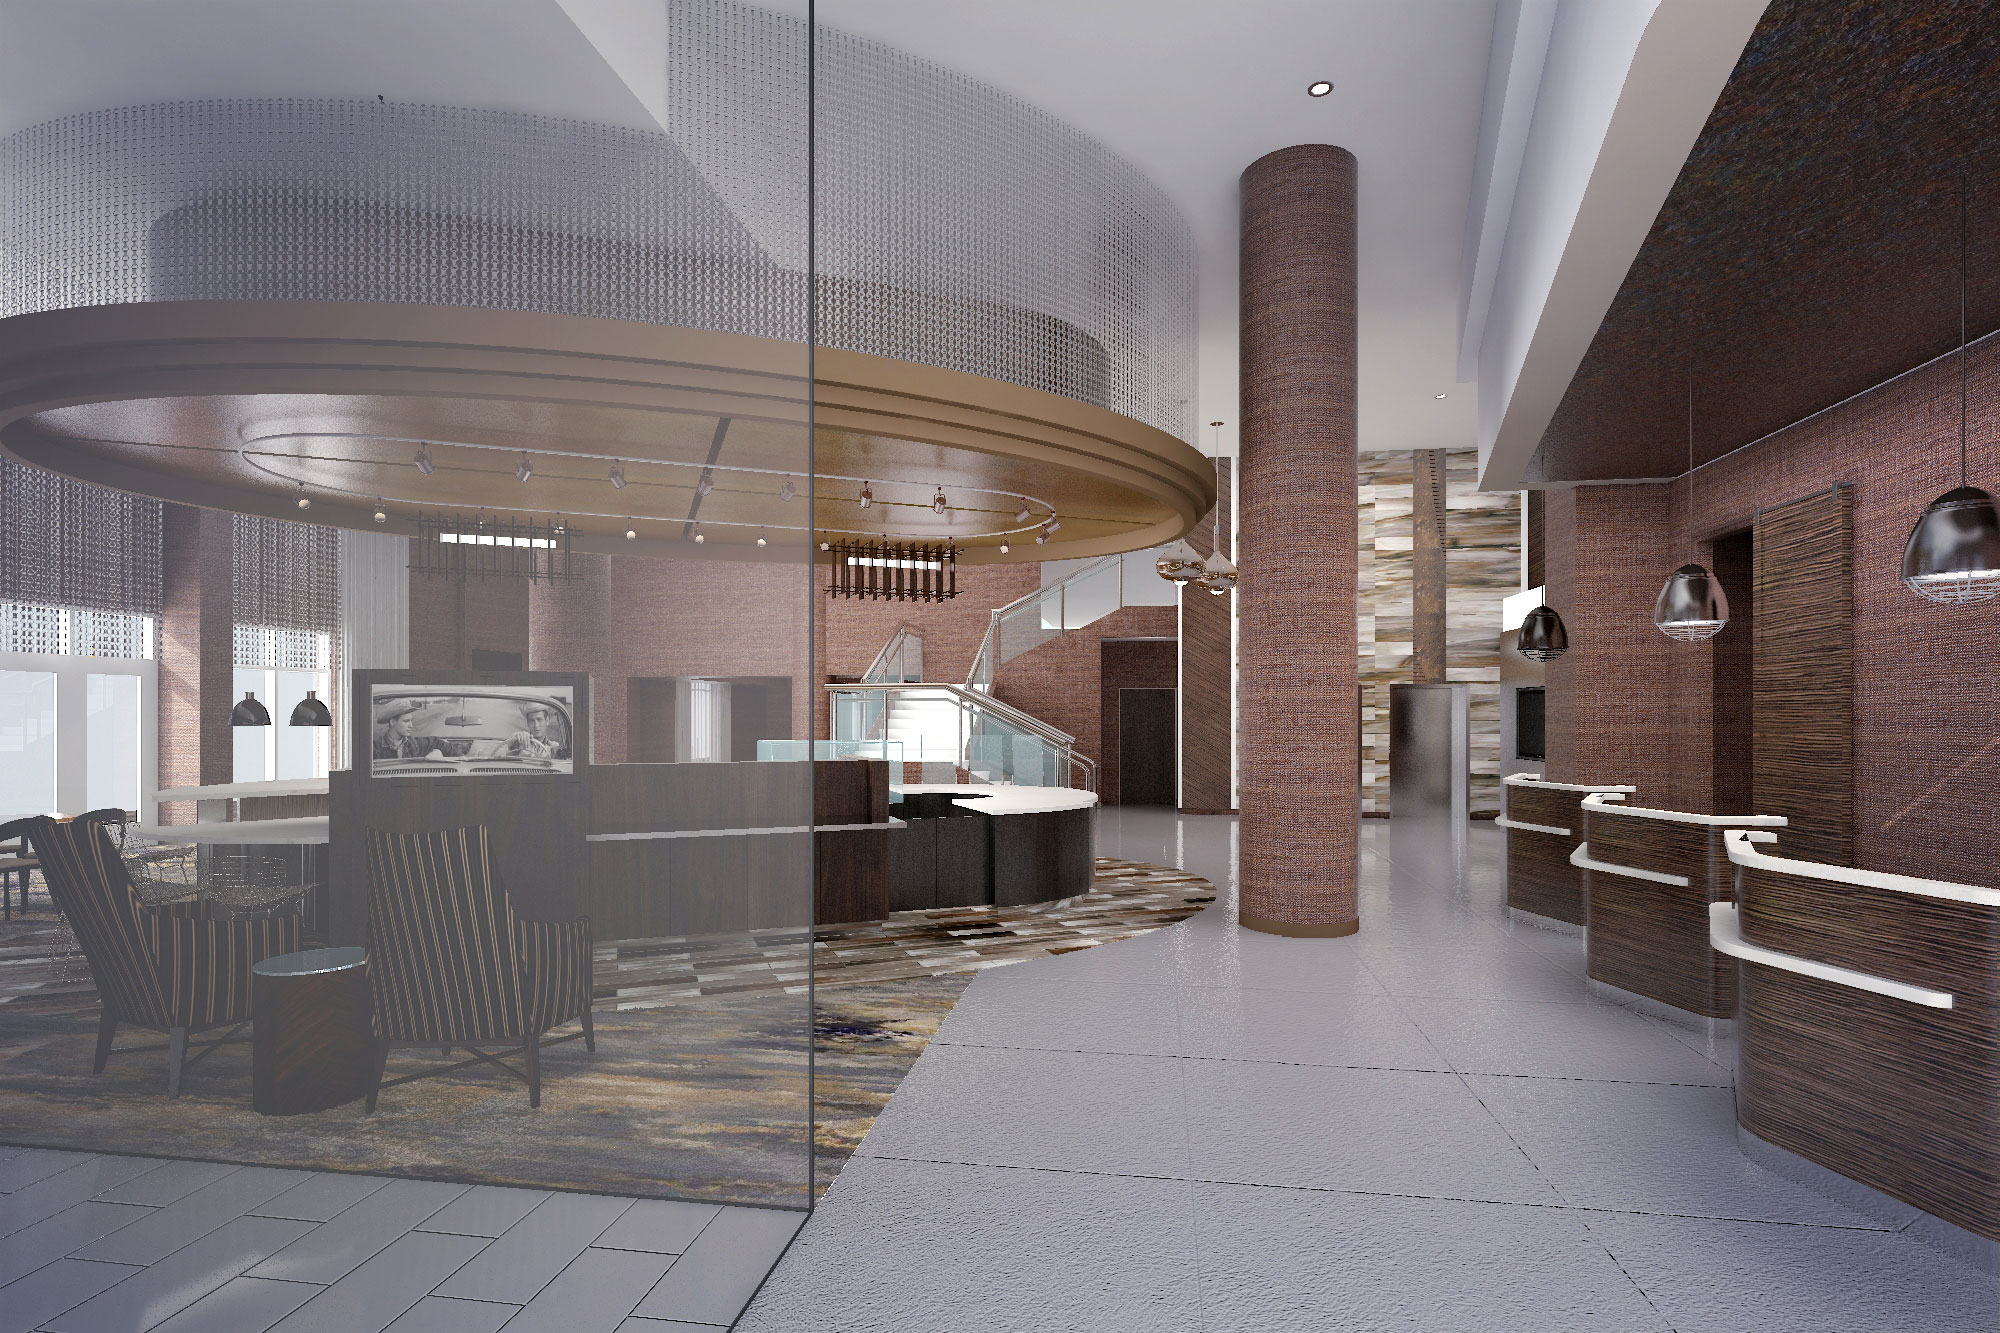 Courtyard By Marriott Lpbc Atlanta Interior Design